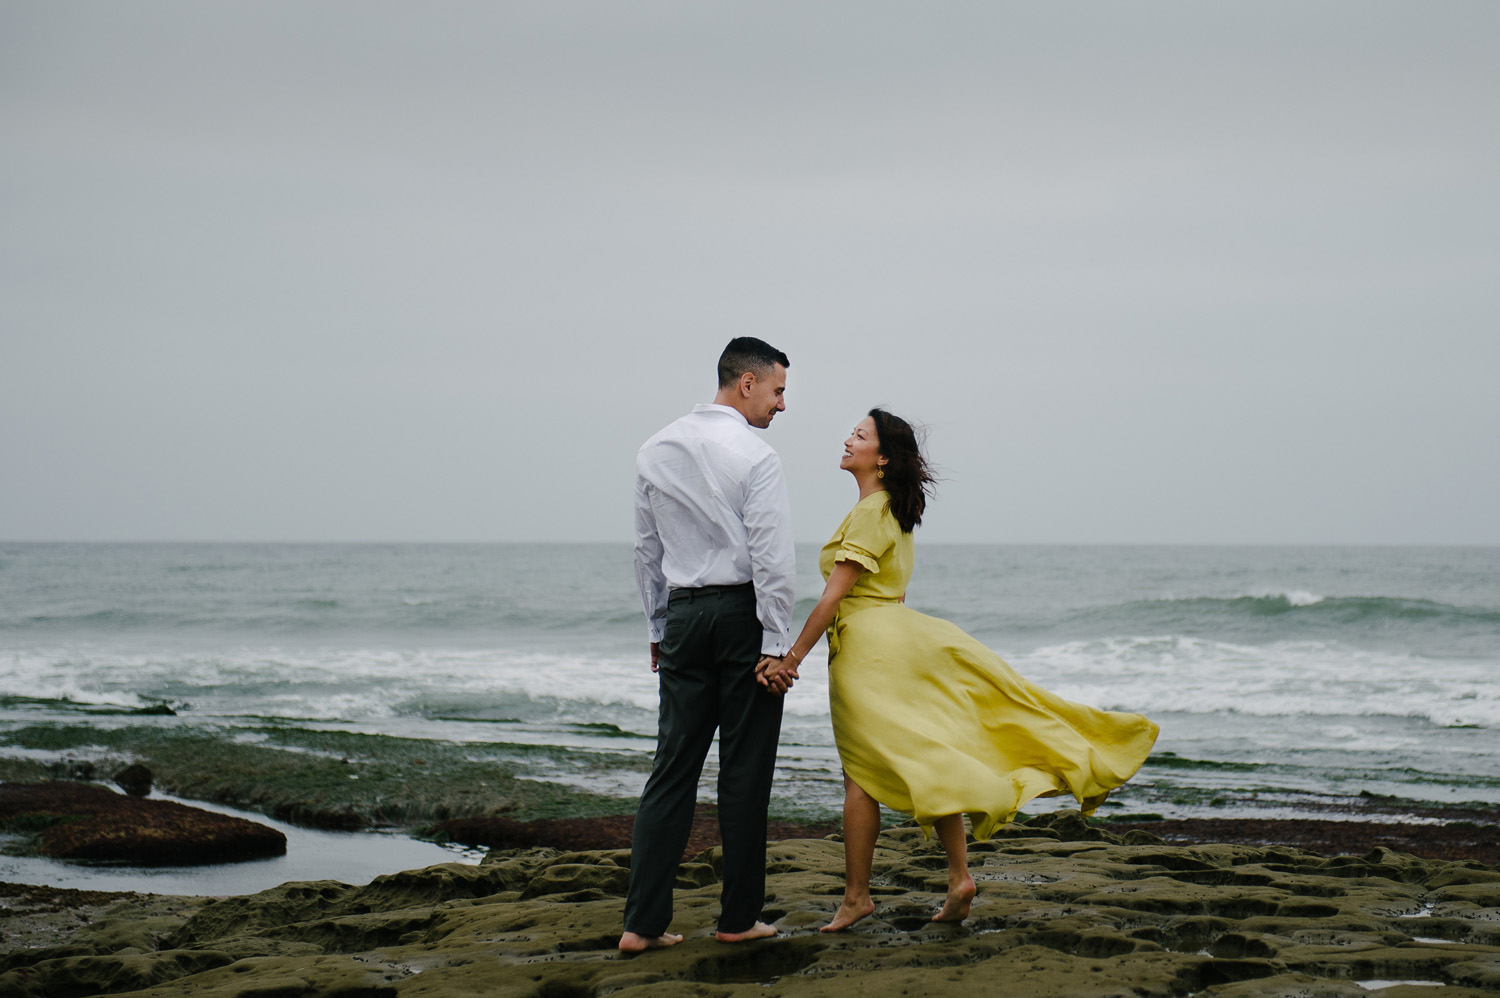 wind blows woman's yellow dress while holding hands with fiancee on marine street beach engagement shoot